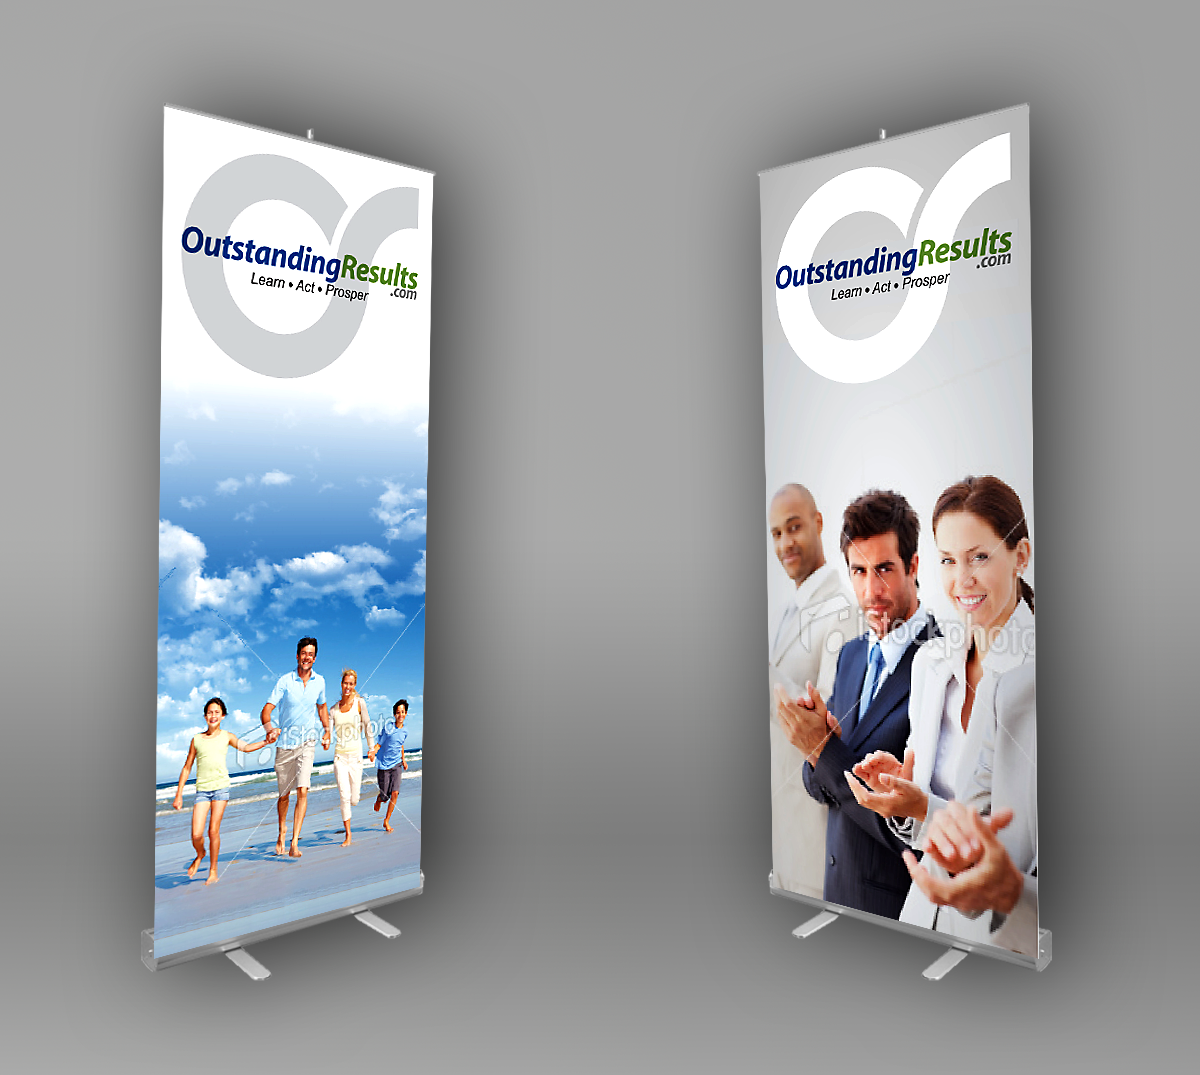 Pull-up event banners design for event promotion co